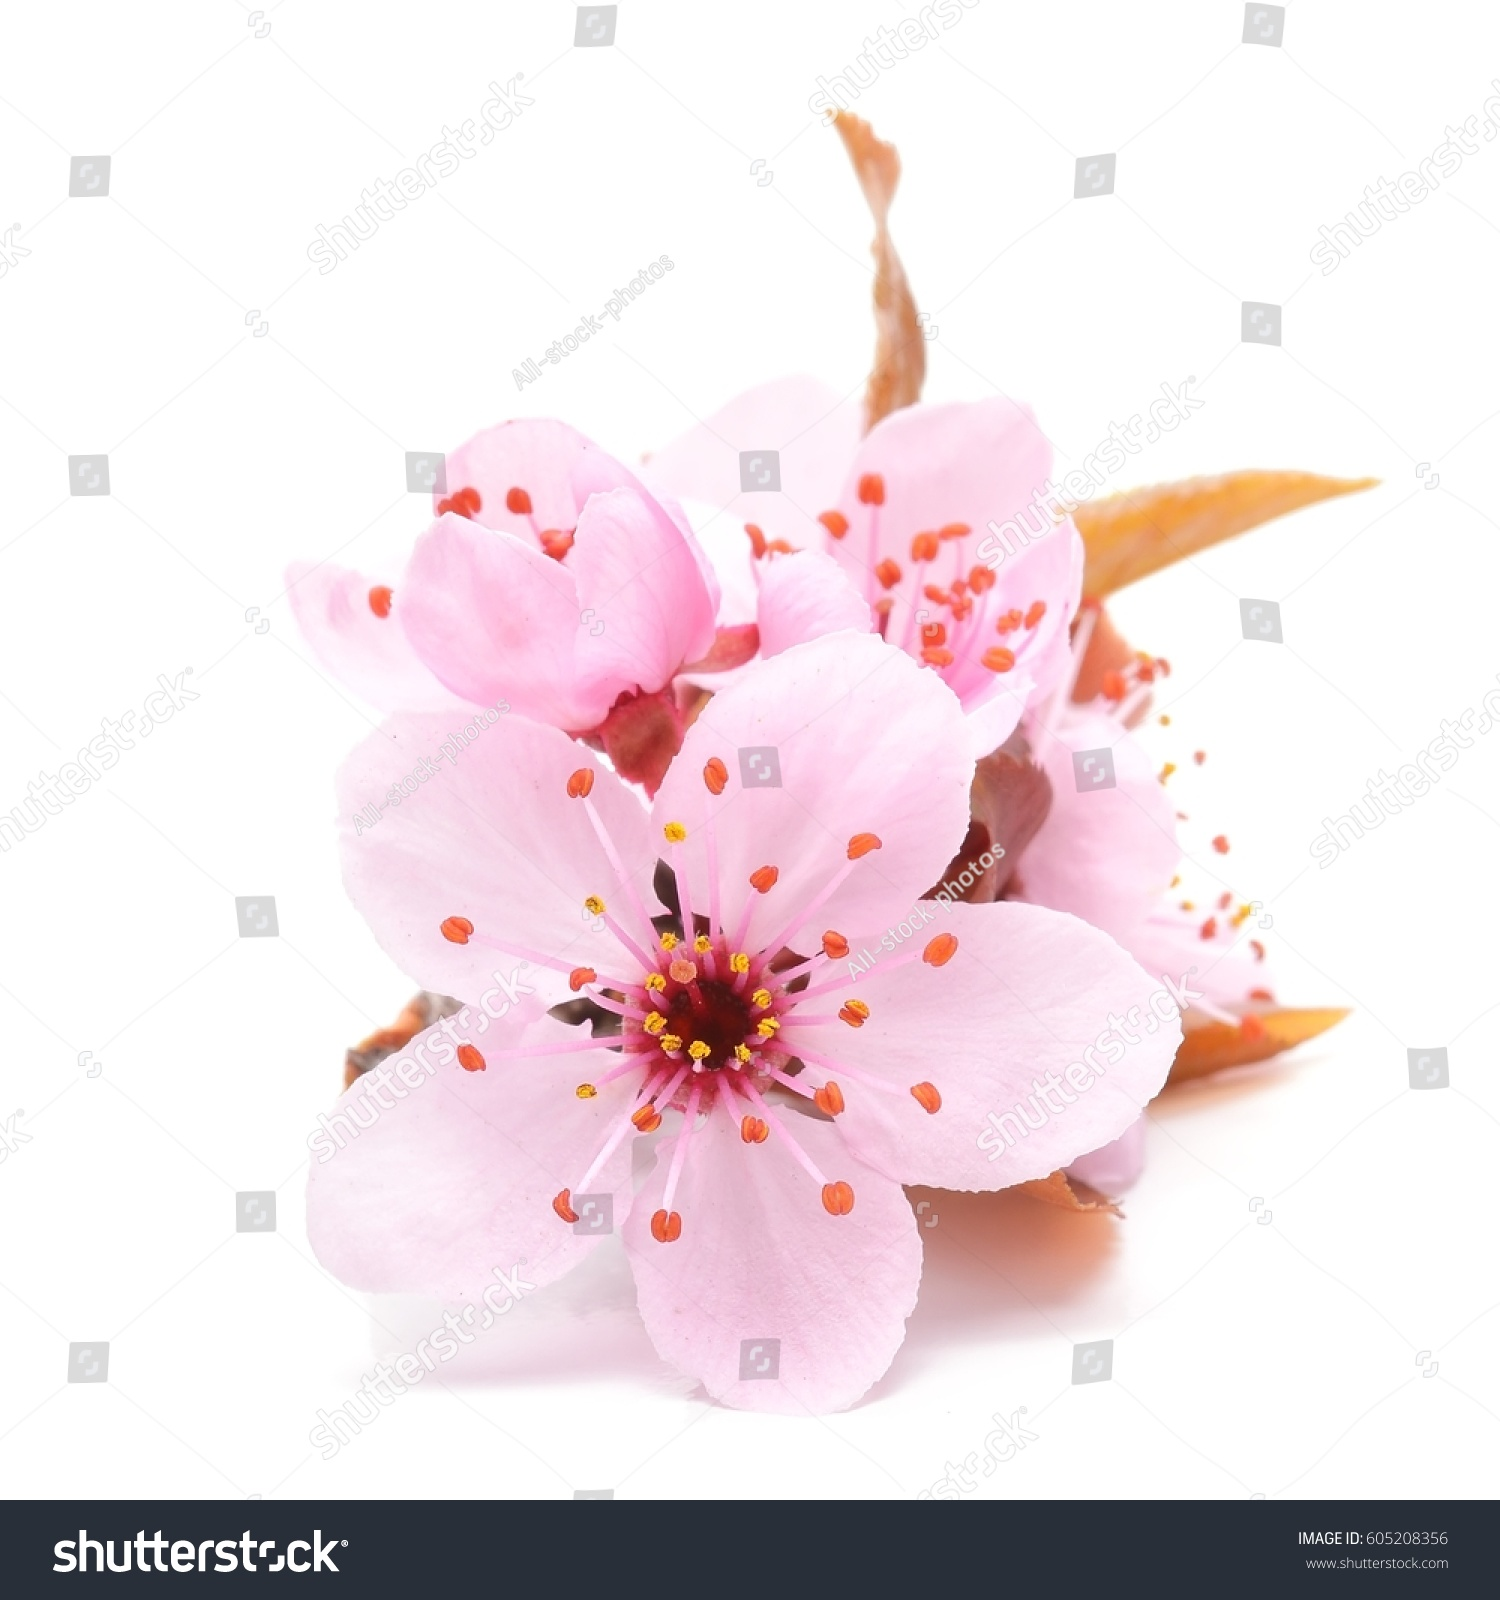 Cherry blossom pink sakura flower isolated stock photo 605208356 cherry blossom pink sakura flower isolated in white background dhlflorist Images